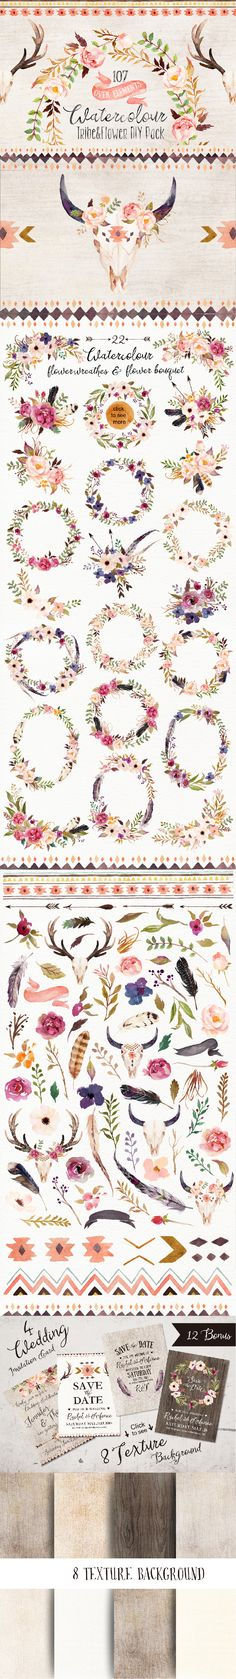 These are big watercolour flower collection,over 107 graphic elements.include:florals,floral wreathes,floral bouquets,leaves,feathers,tribal elements,deer,bull,ribbon,ethnic border,branches,grass.Can be used for various purposes.such as logos, wedding invitation, t-shirt, label, badges ,greetings,packaging, stationery, merchandise, posters, websites, digital presentations and more....you can DIY anything your want! :)